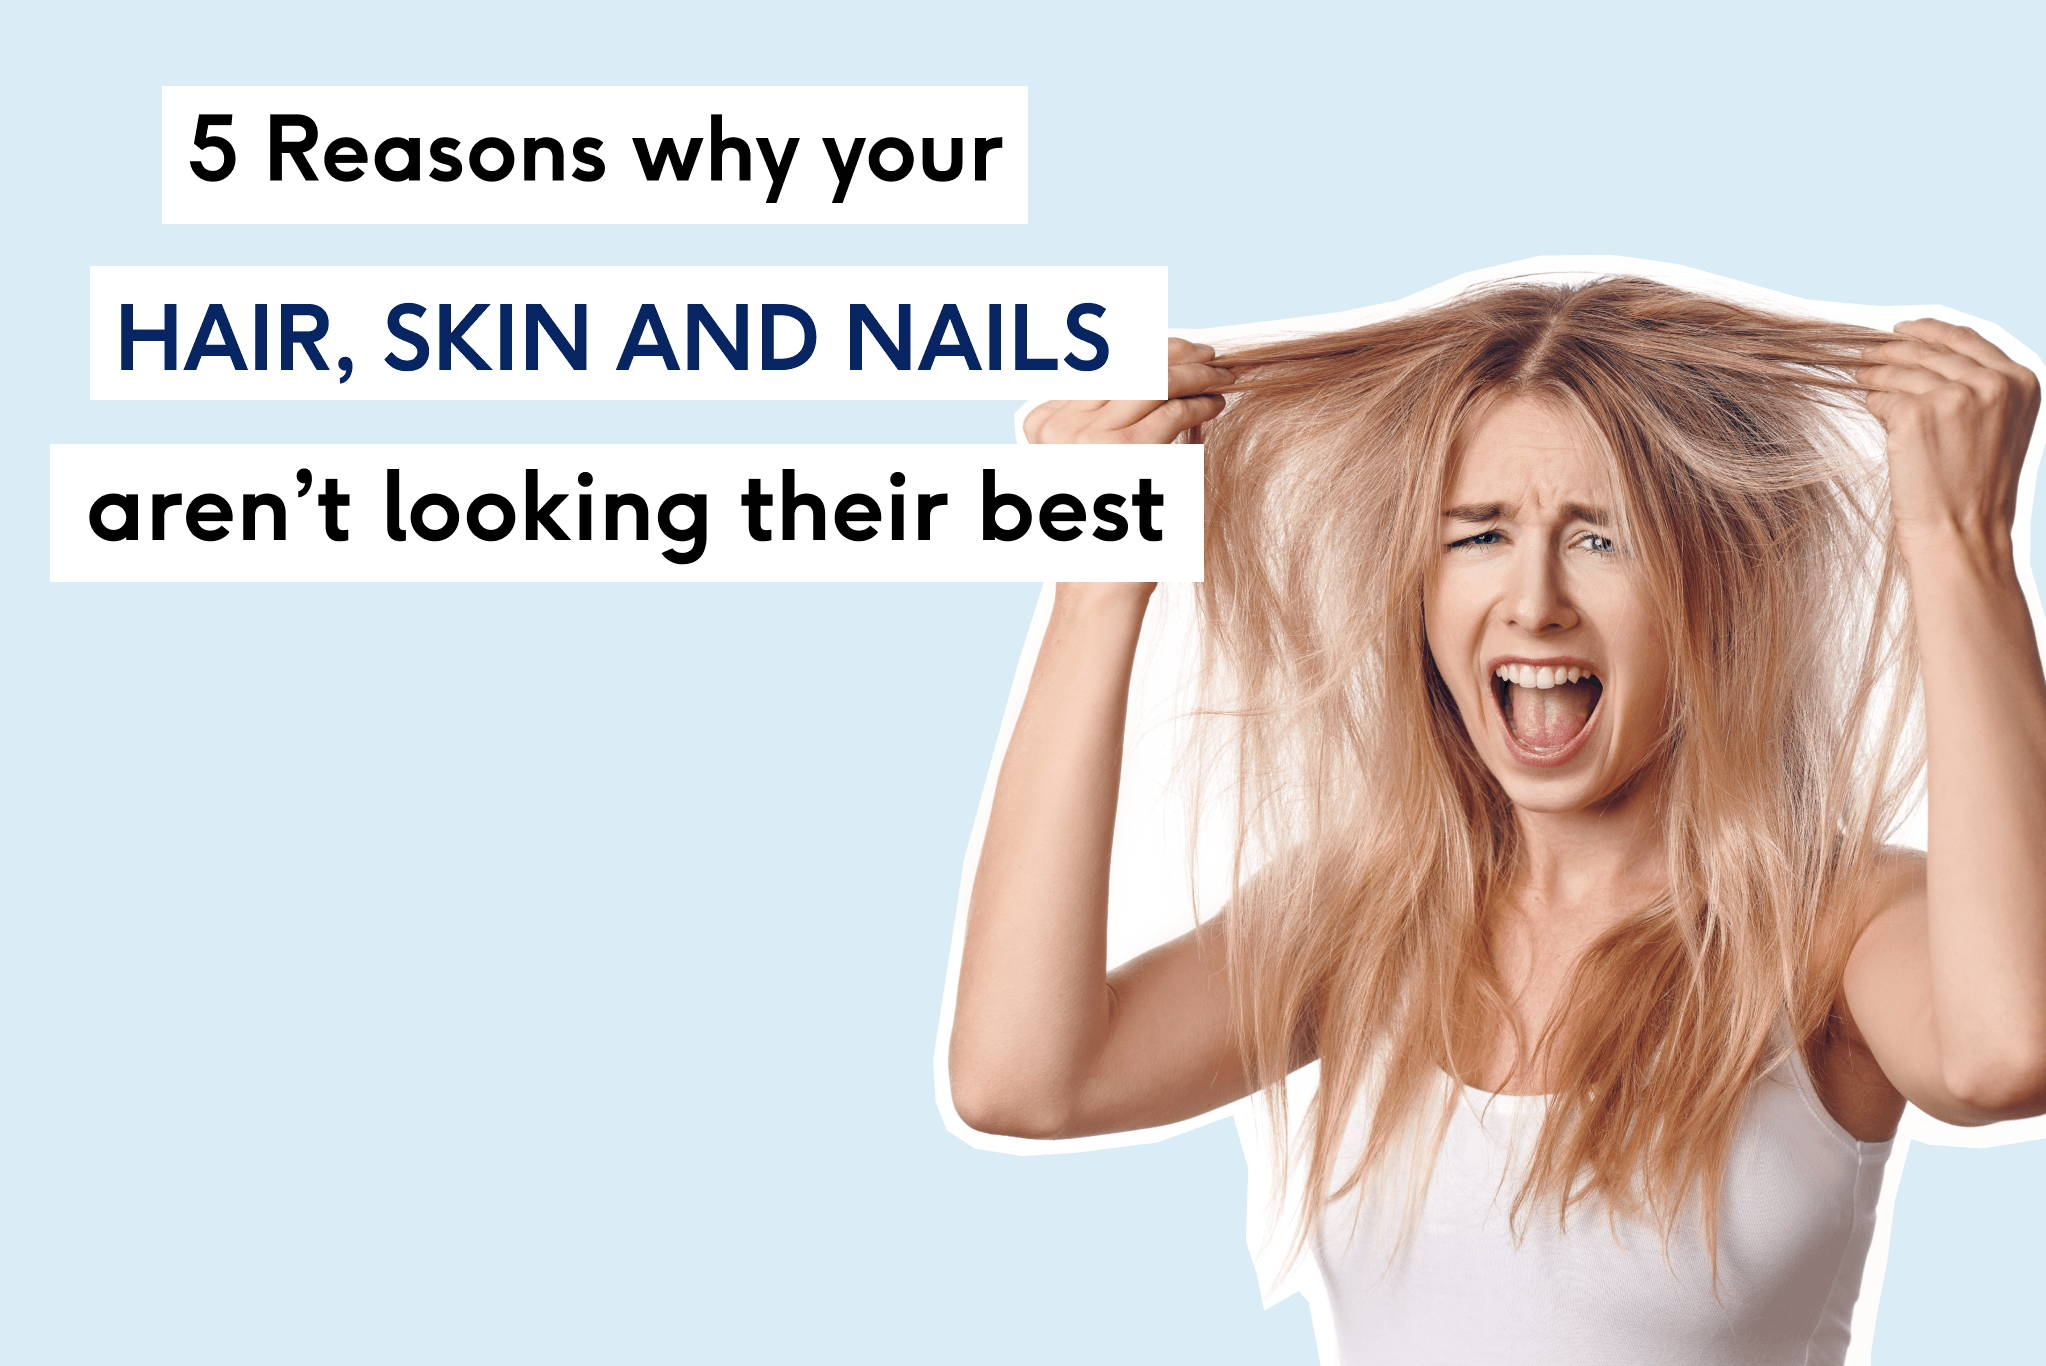 5 Reasons Why Your Hair, Skin and Nails Aren't Looking Their Best